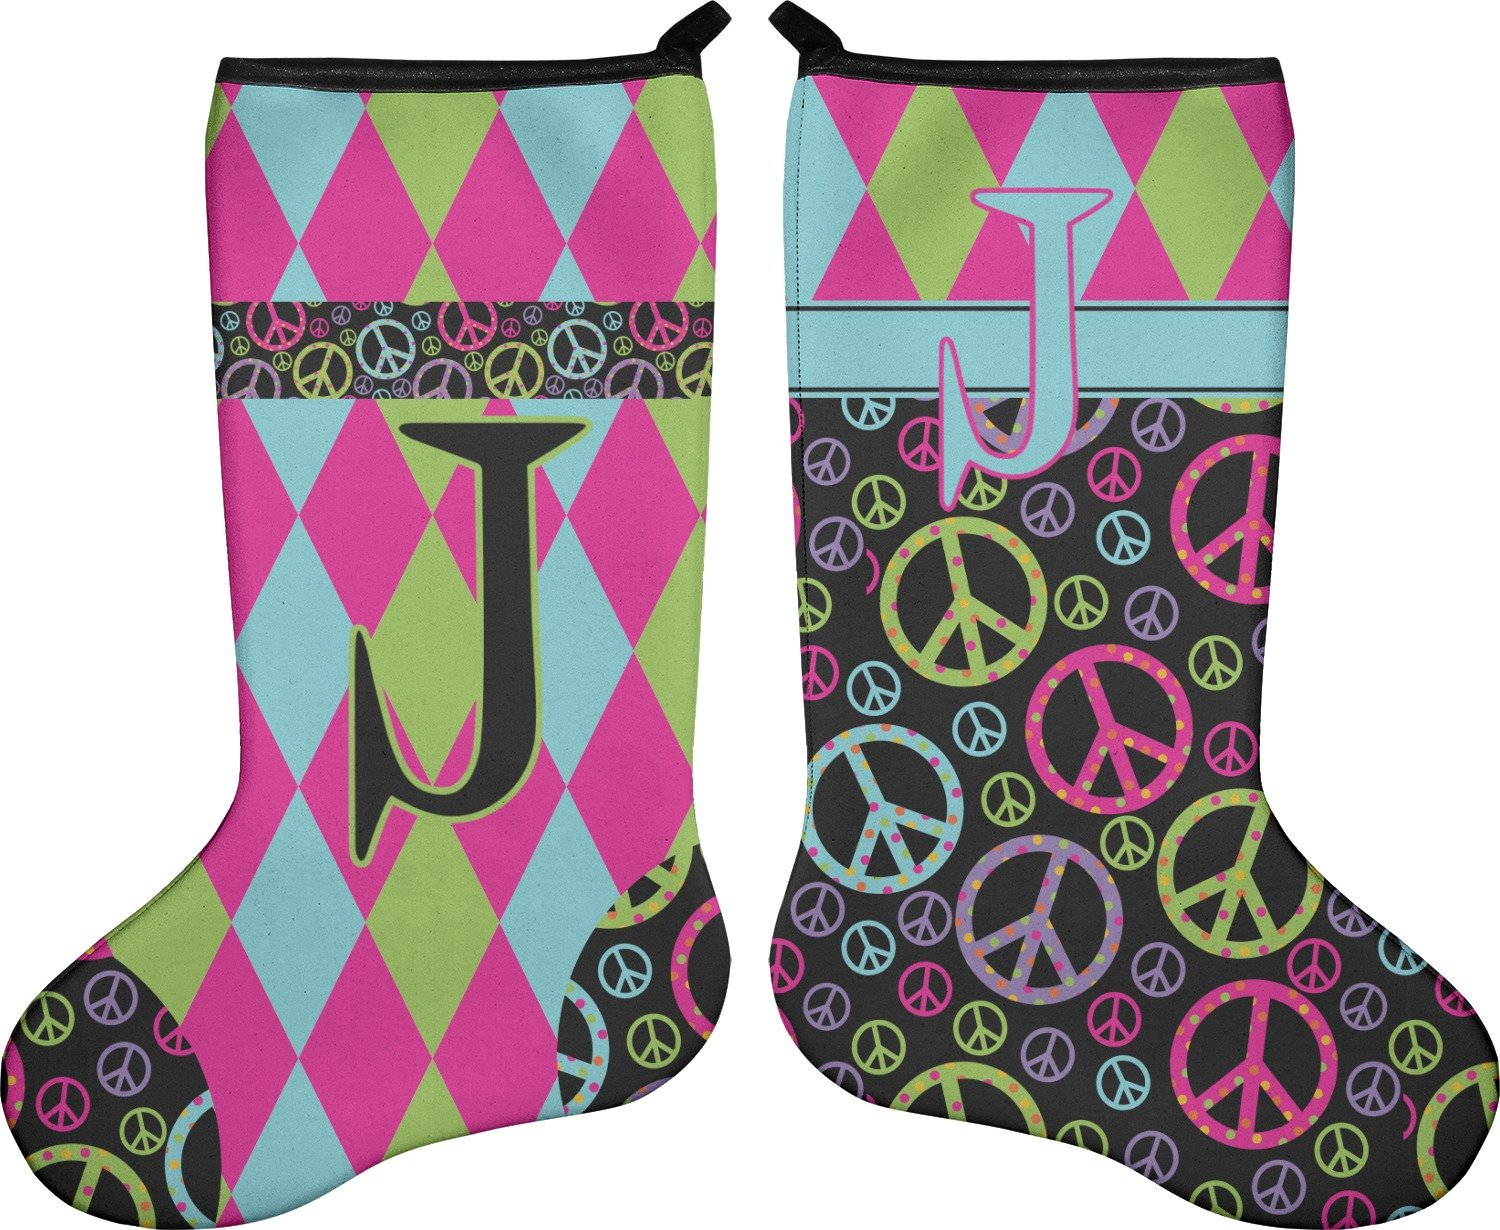 43d59710e Amazon.com  RNK Shops Harlequin   Peace Signs Christmas Stocking -  Double-Sided - Neoprene (Personalized)  Home   Kitchen